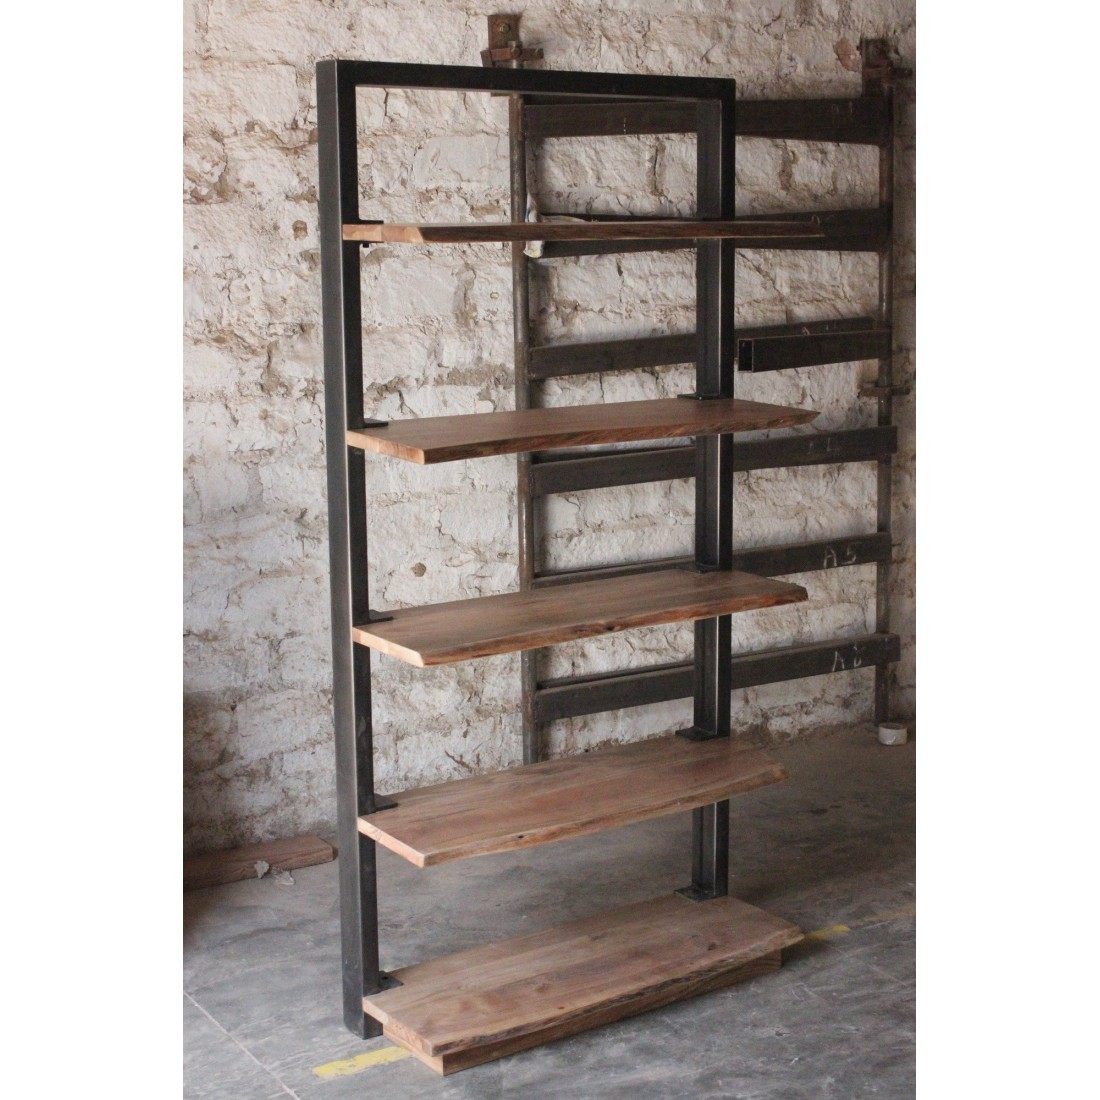 meble industrialne rega industrialny inds sb 04. Black Bedroom Furniture Sets. Home Design Ideas